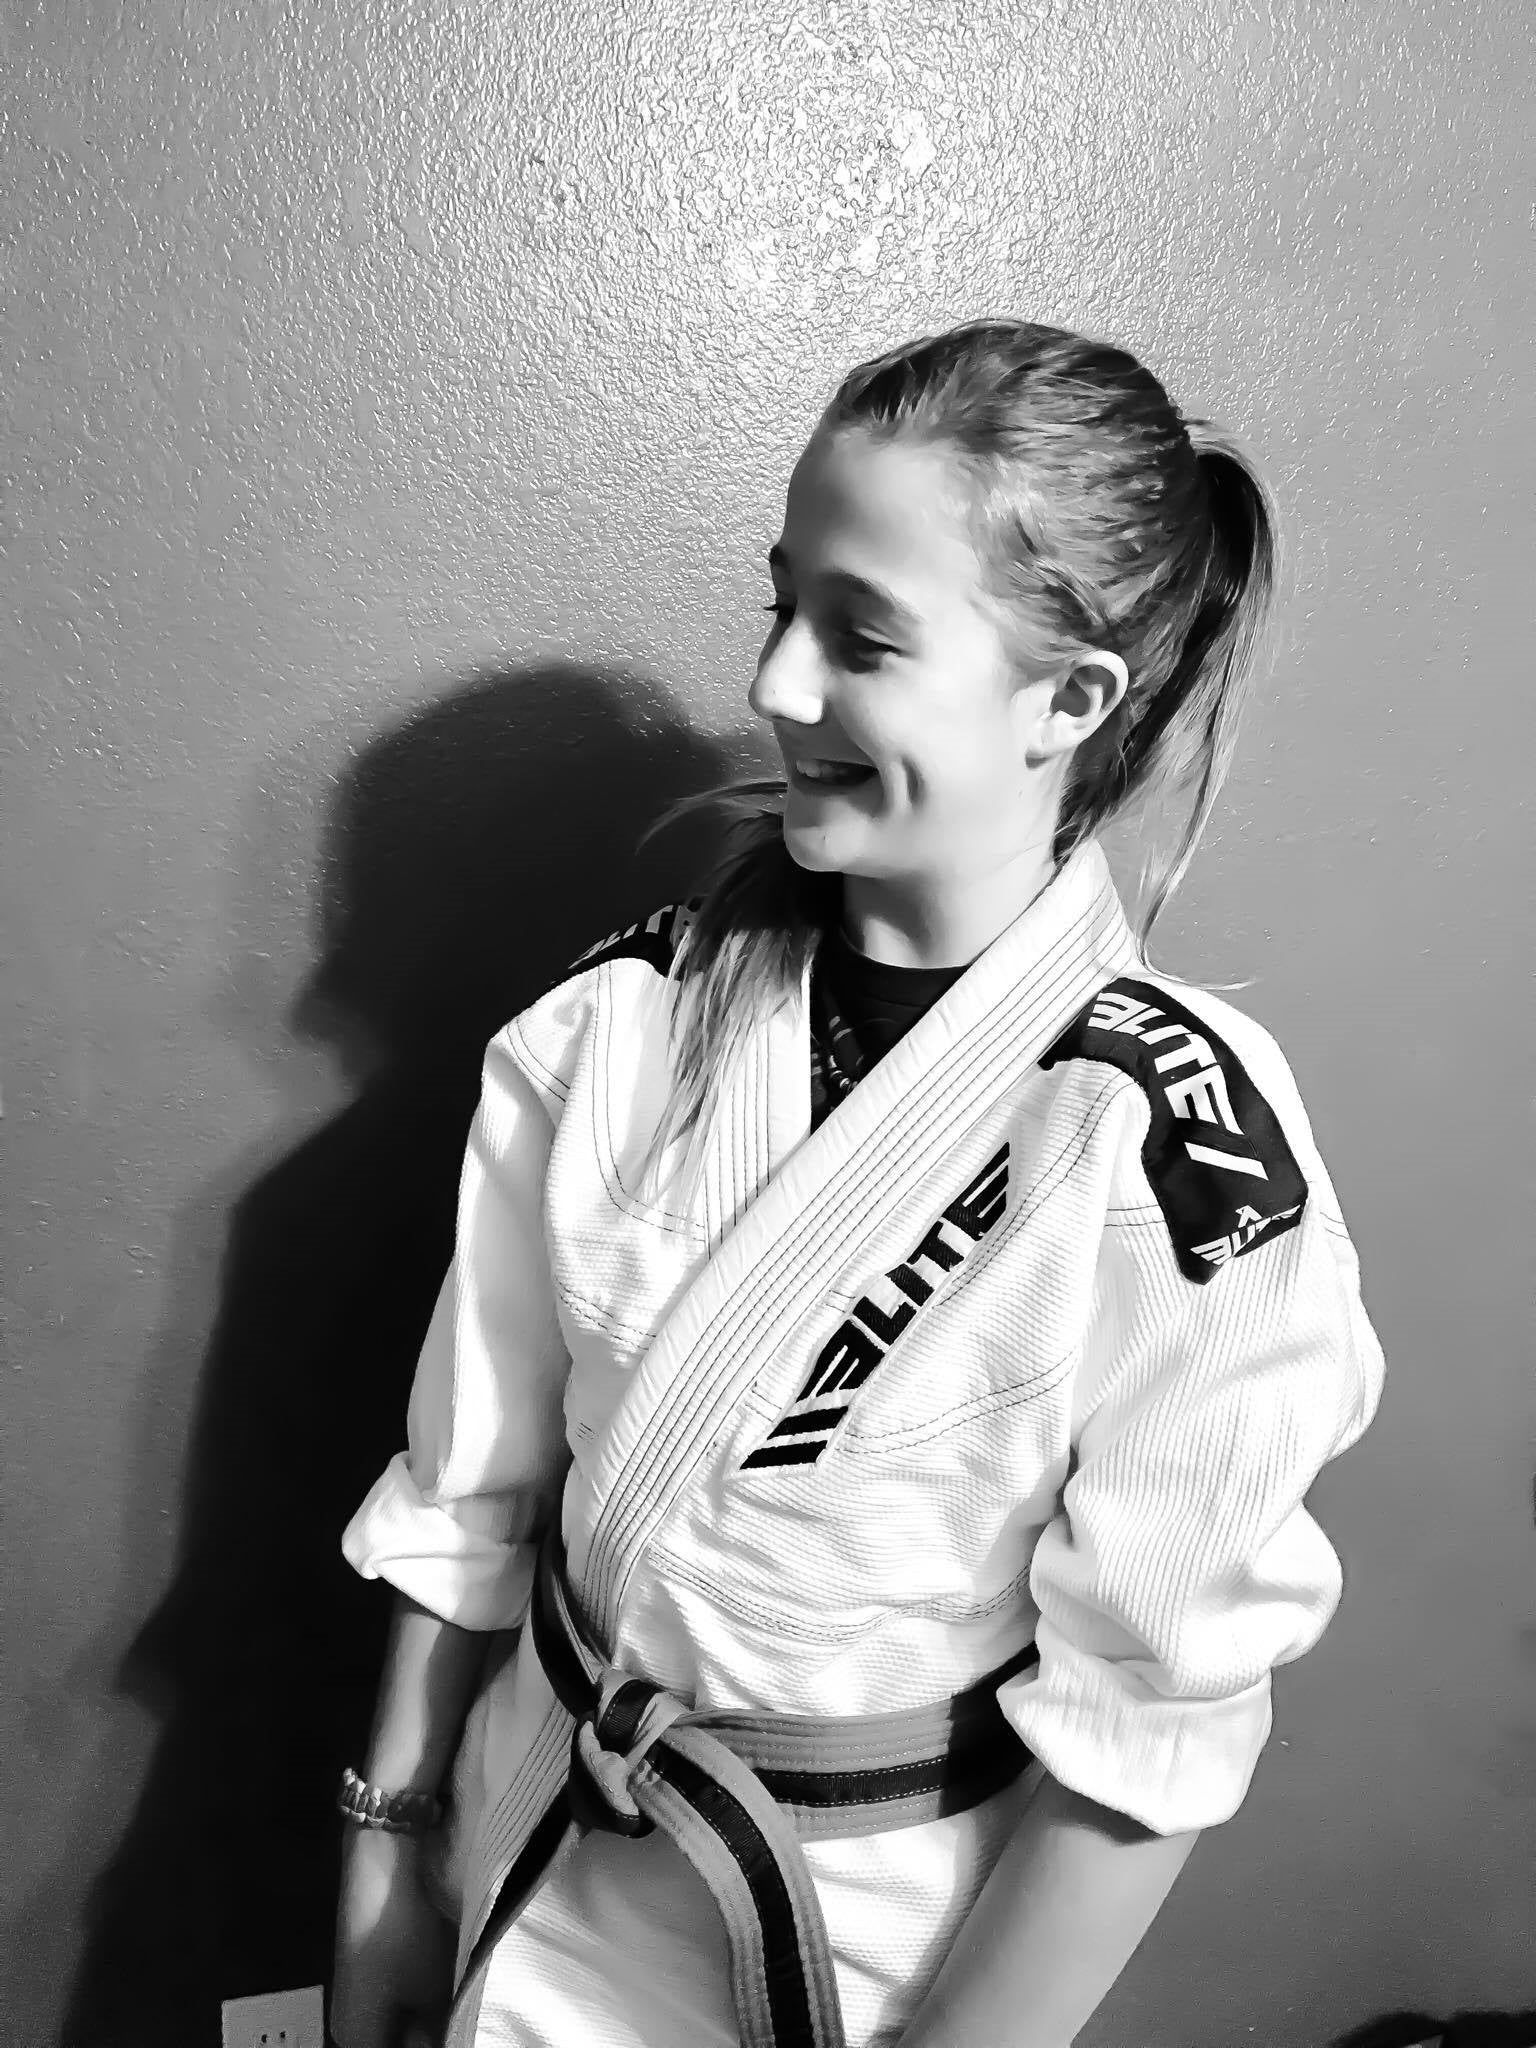 Elite sports Team Elite JUDO Taylin Elizabeth Oberly image10.jpeg